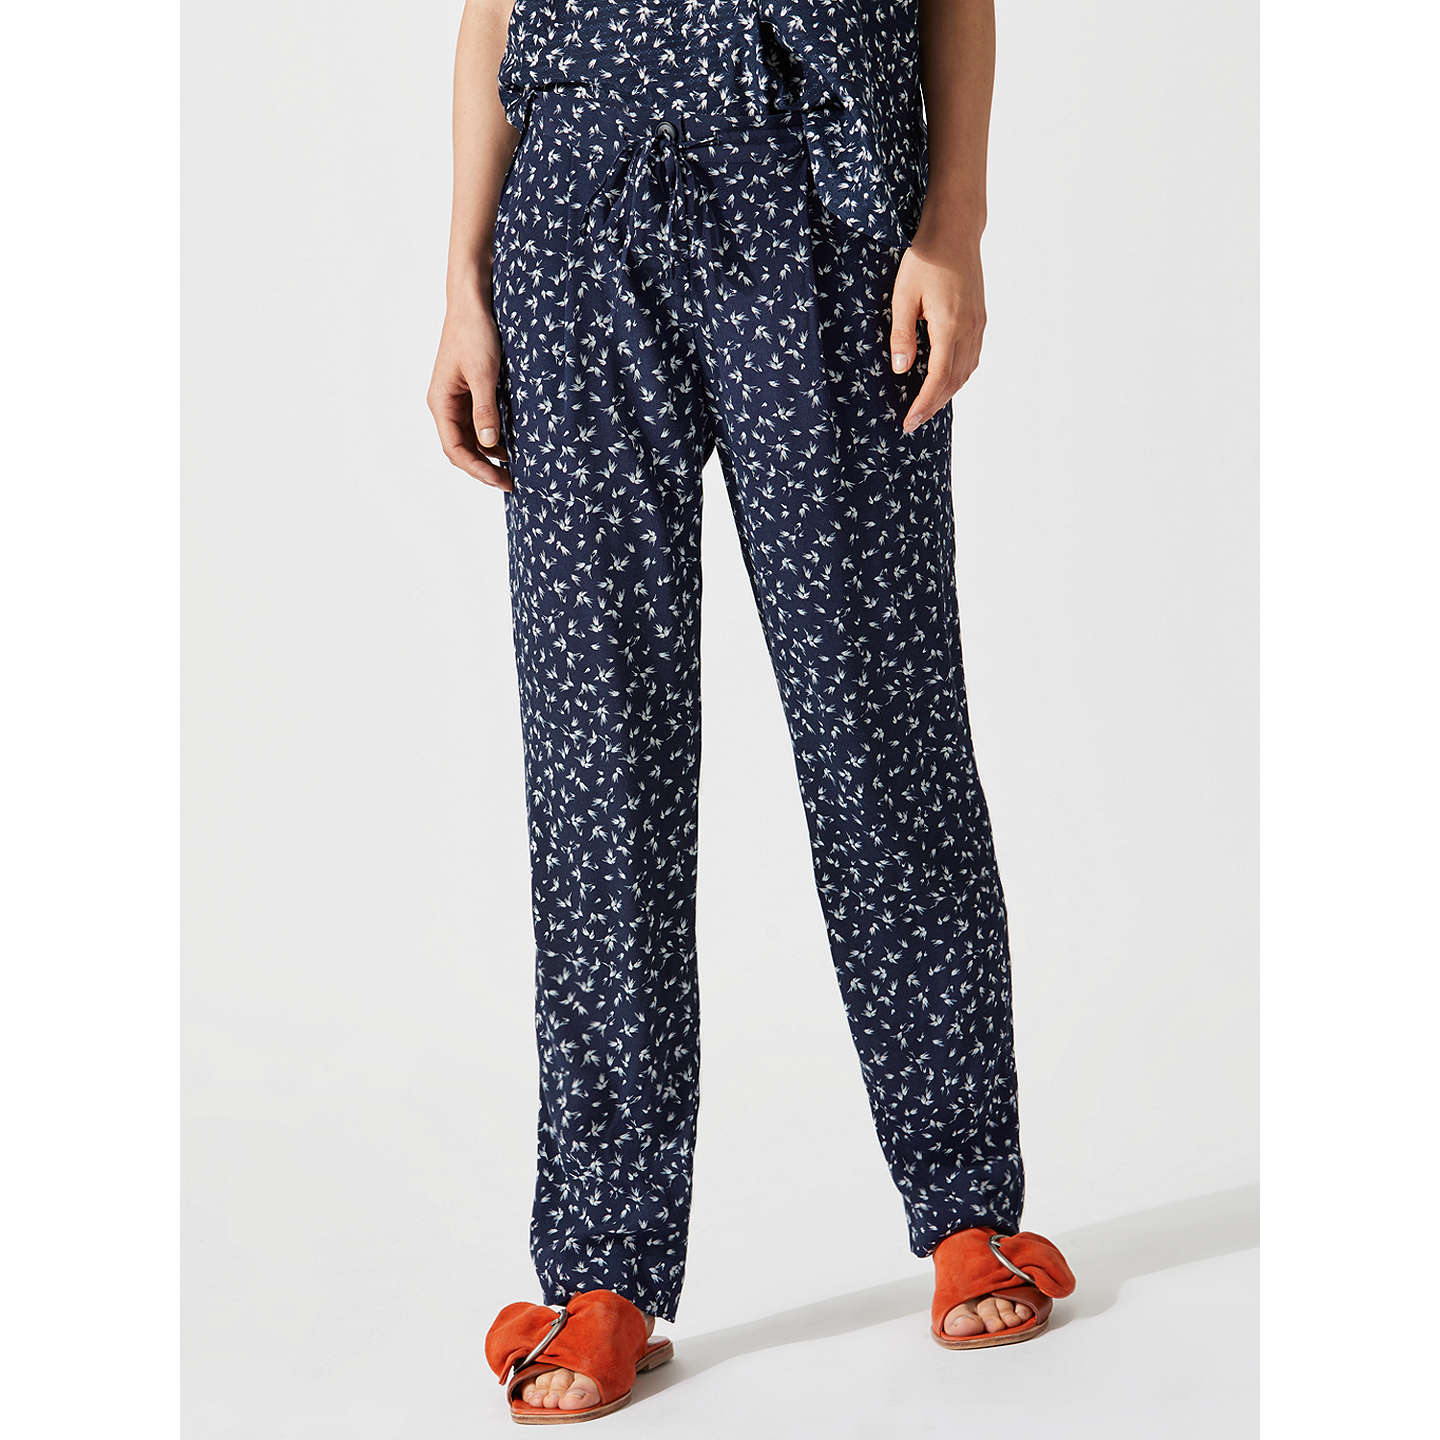 BuyJigsaw Mini Splash Trousers, Navy, 14 Online at johnlewis.com